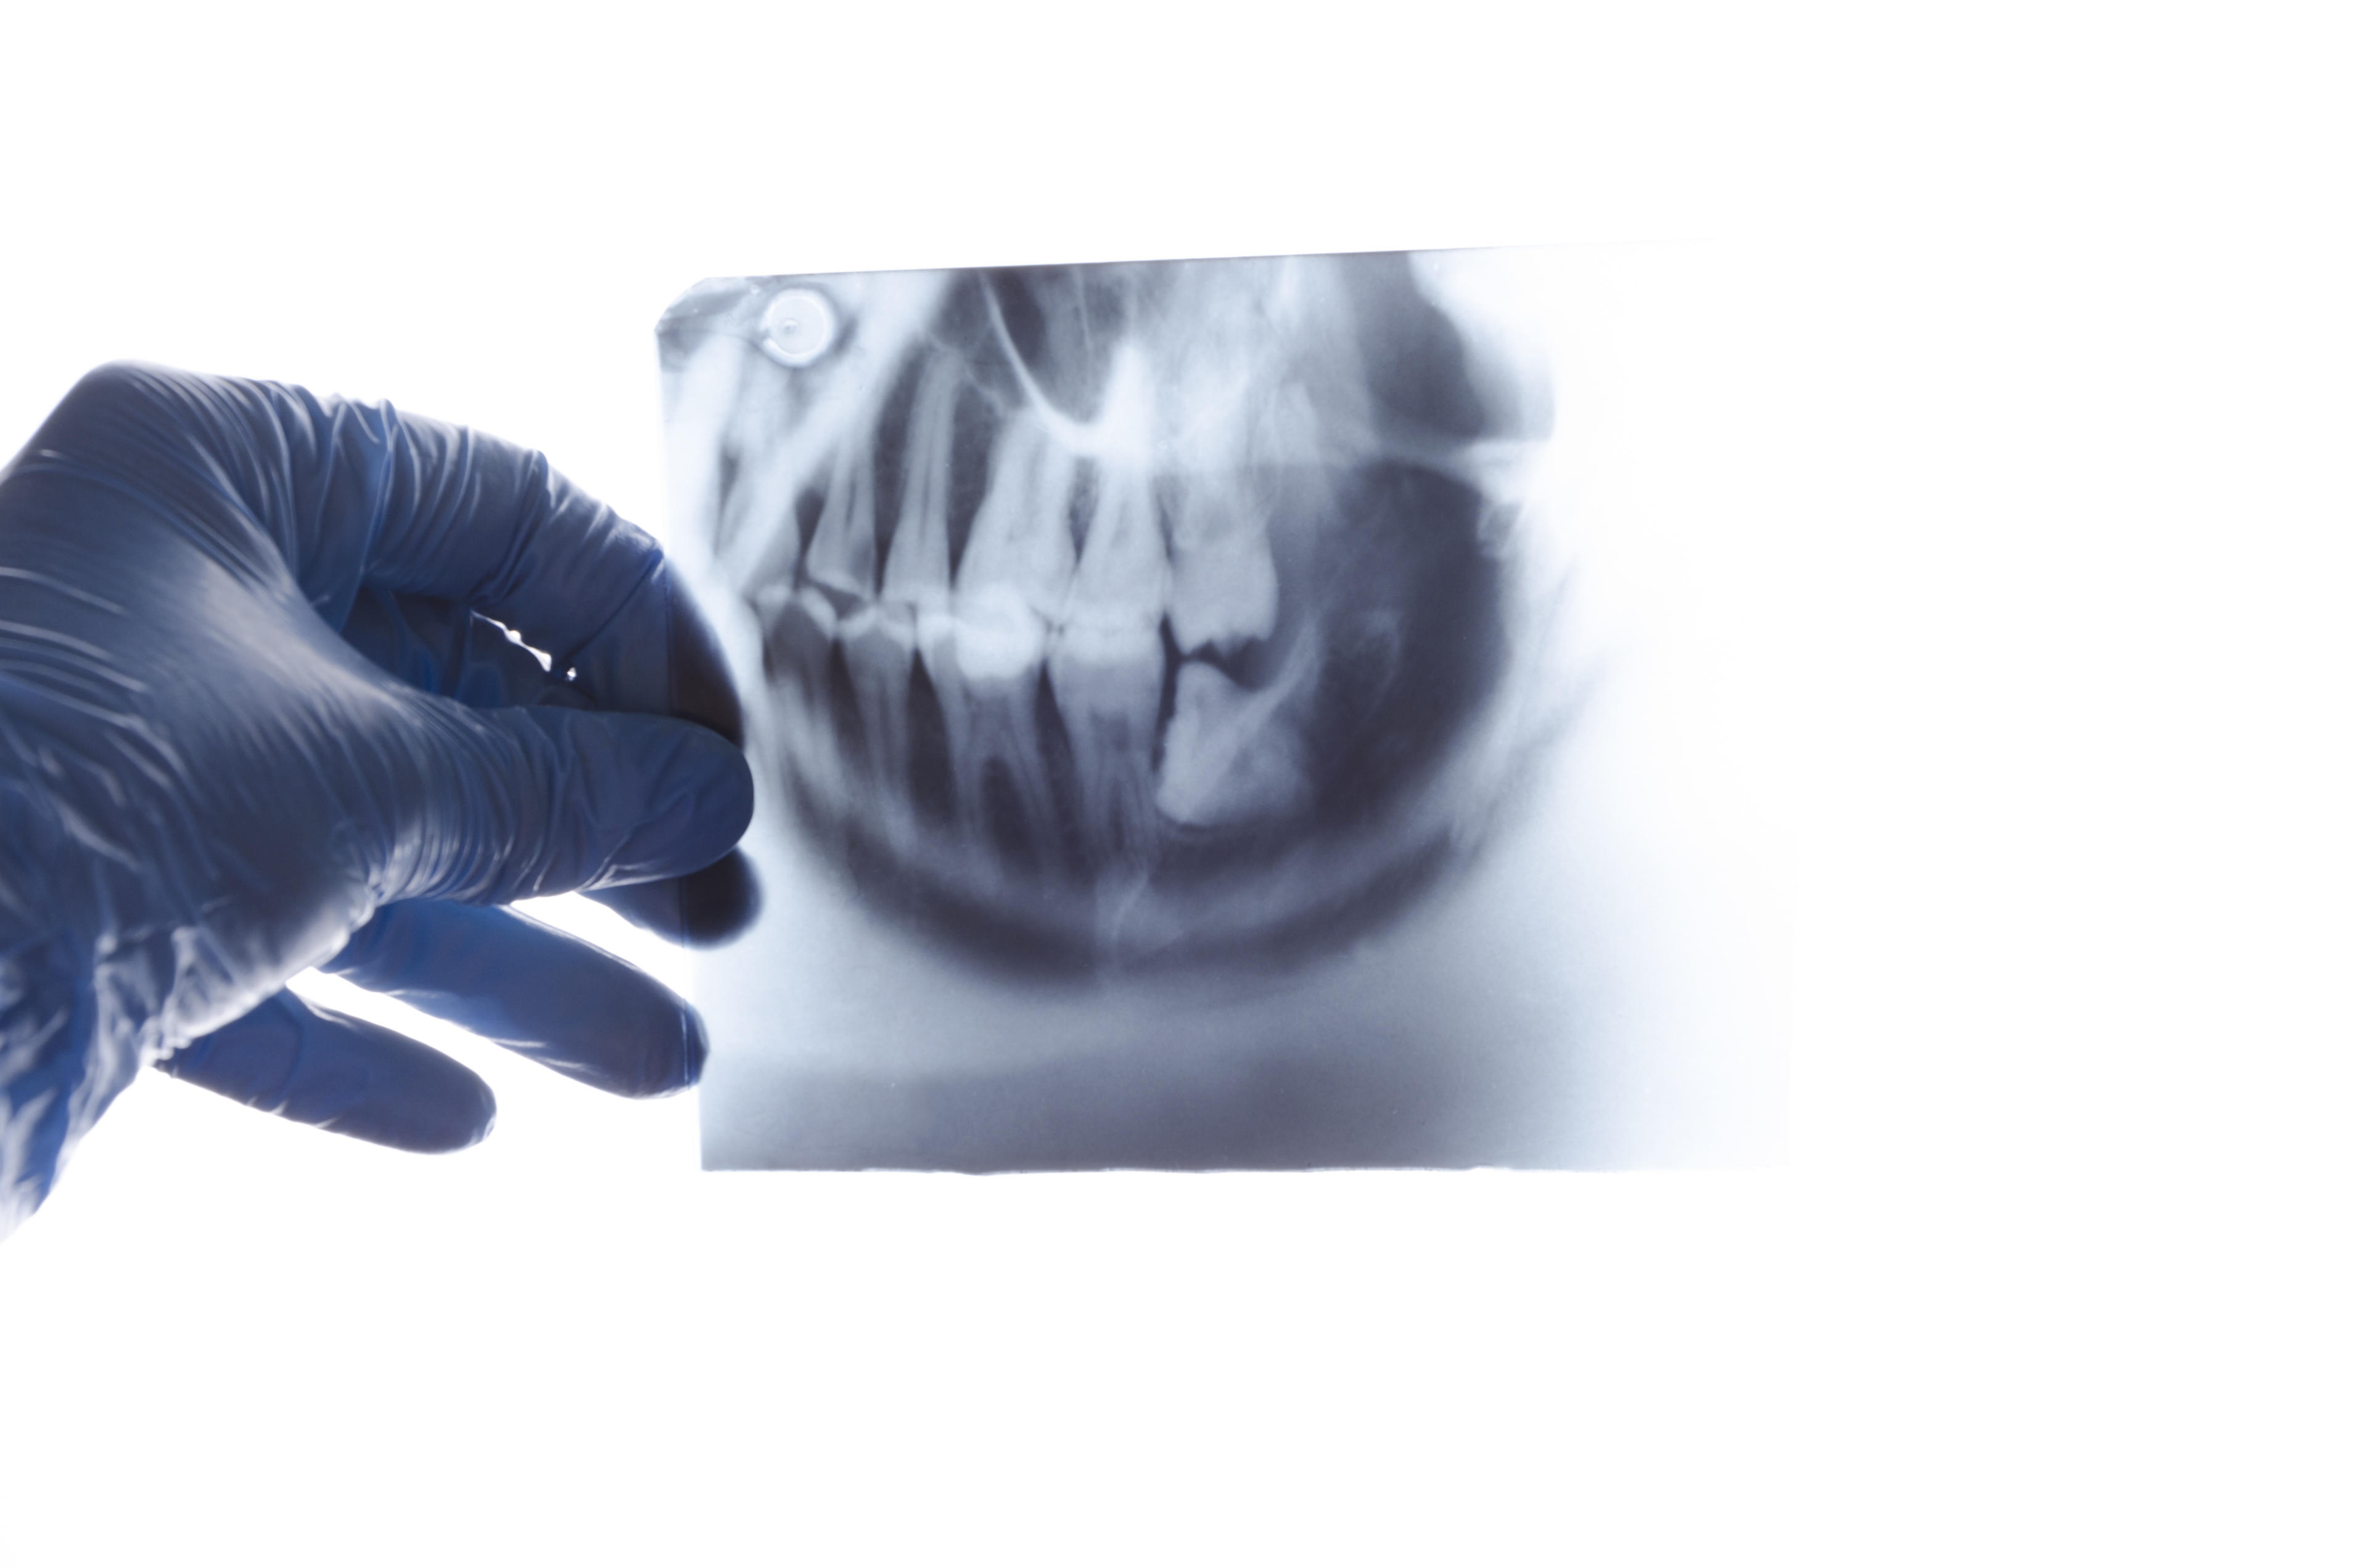 X-rays - what does preventive dental care cover ?